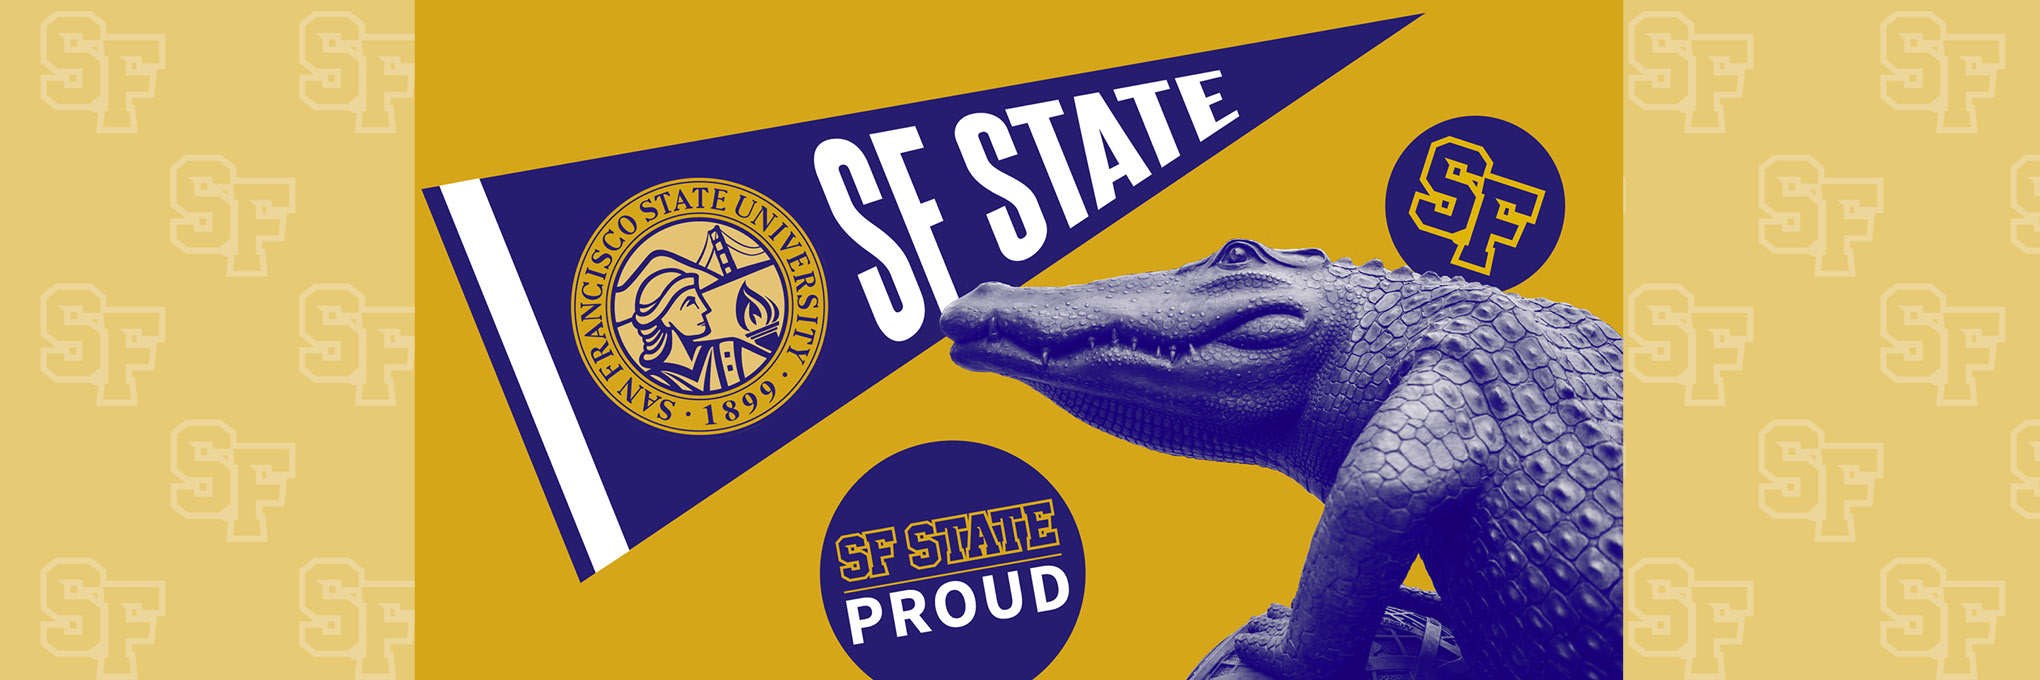 SFSU branding with SF State flag and alligator